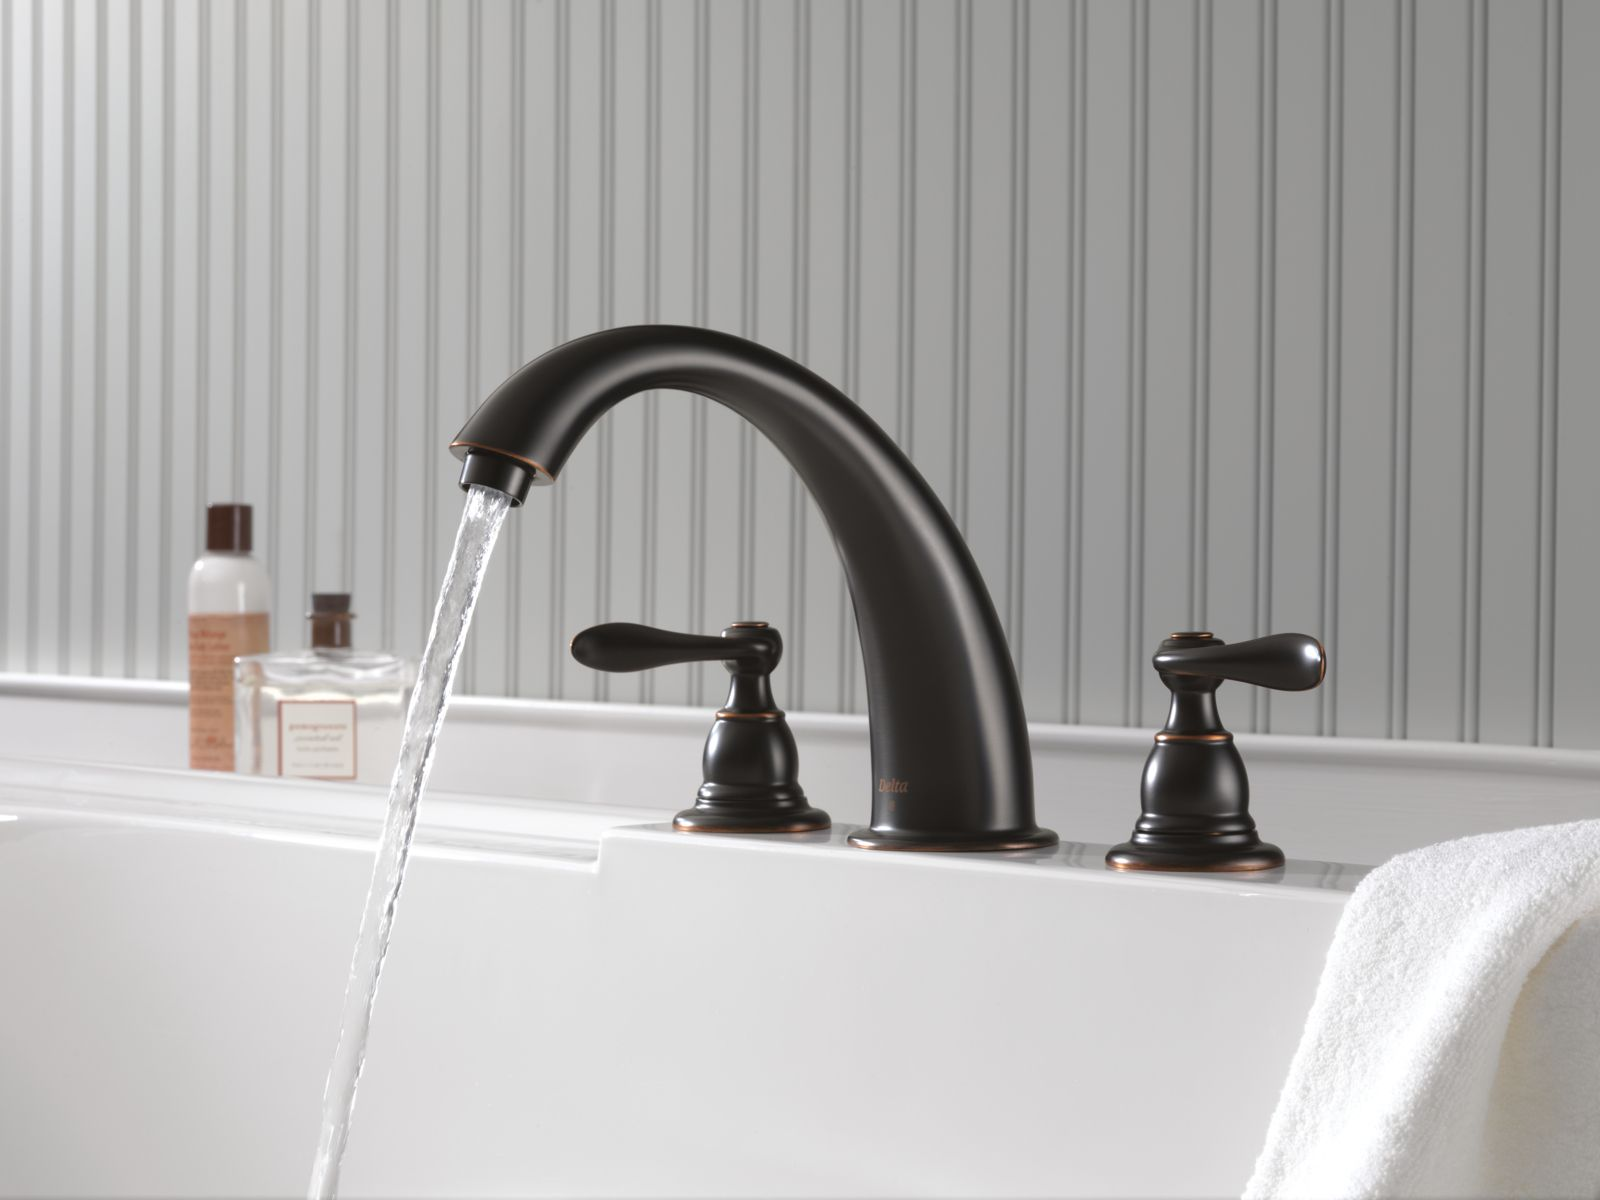 Delta Windemere Bathroom Faucet Check More At Httpcasahoma Captivating Oil Rubbed Bronze Bathroom Faucet Review